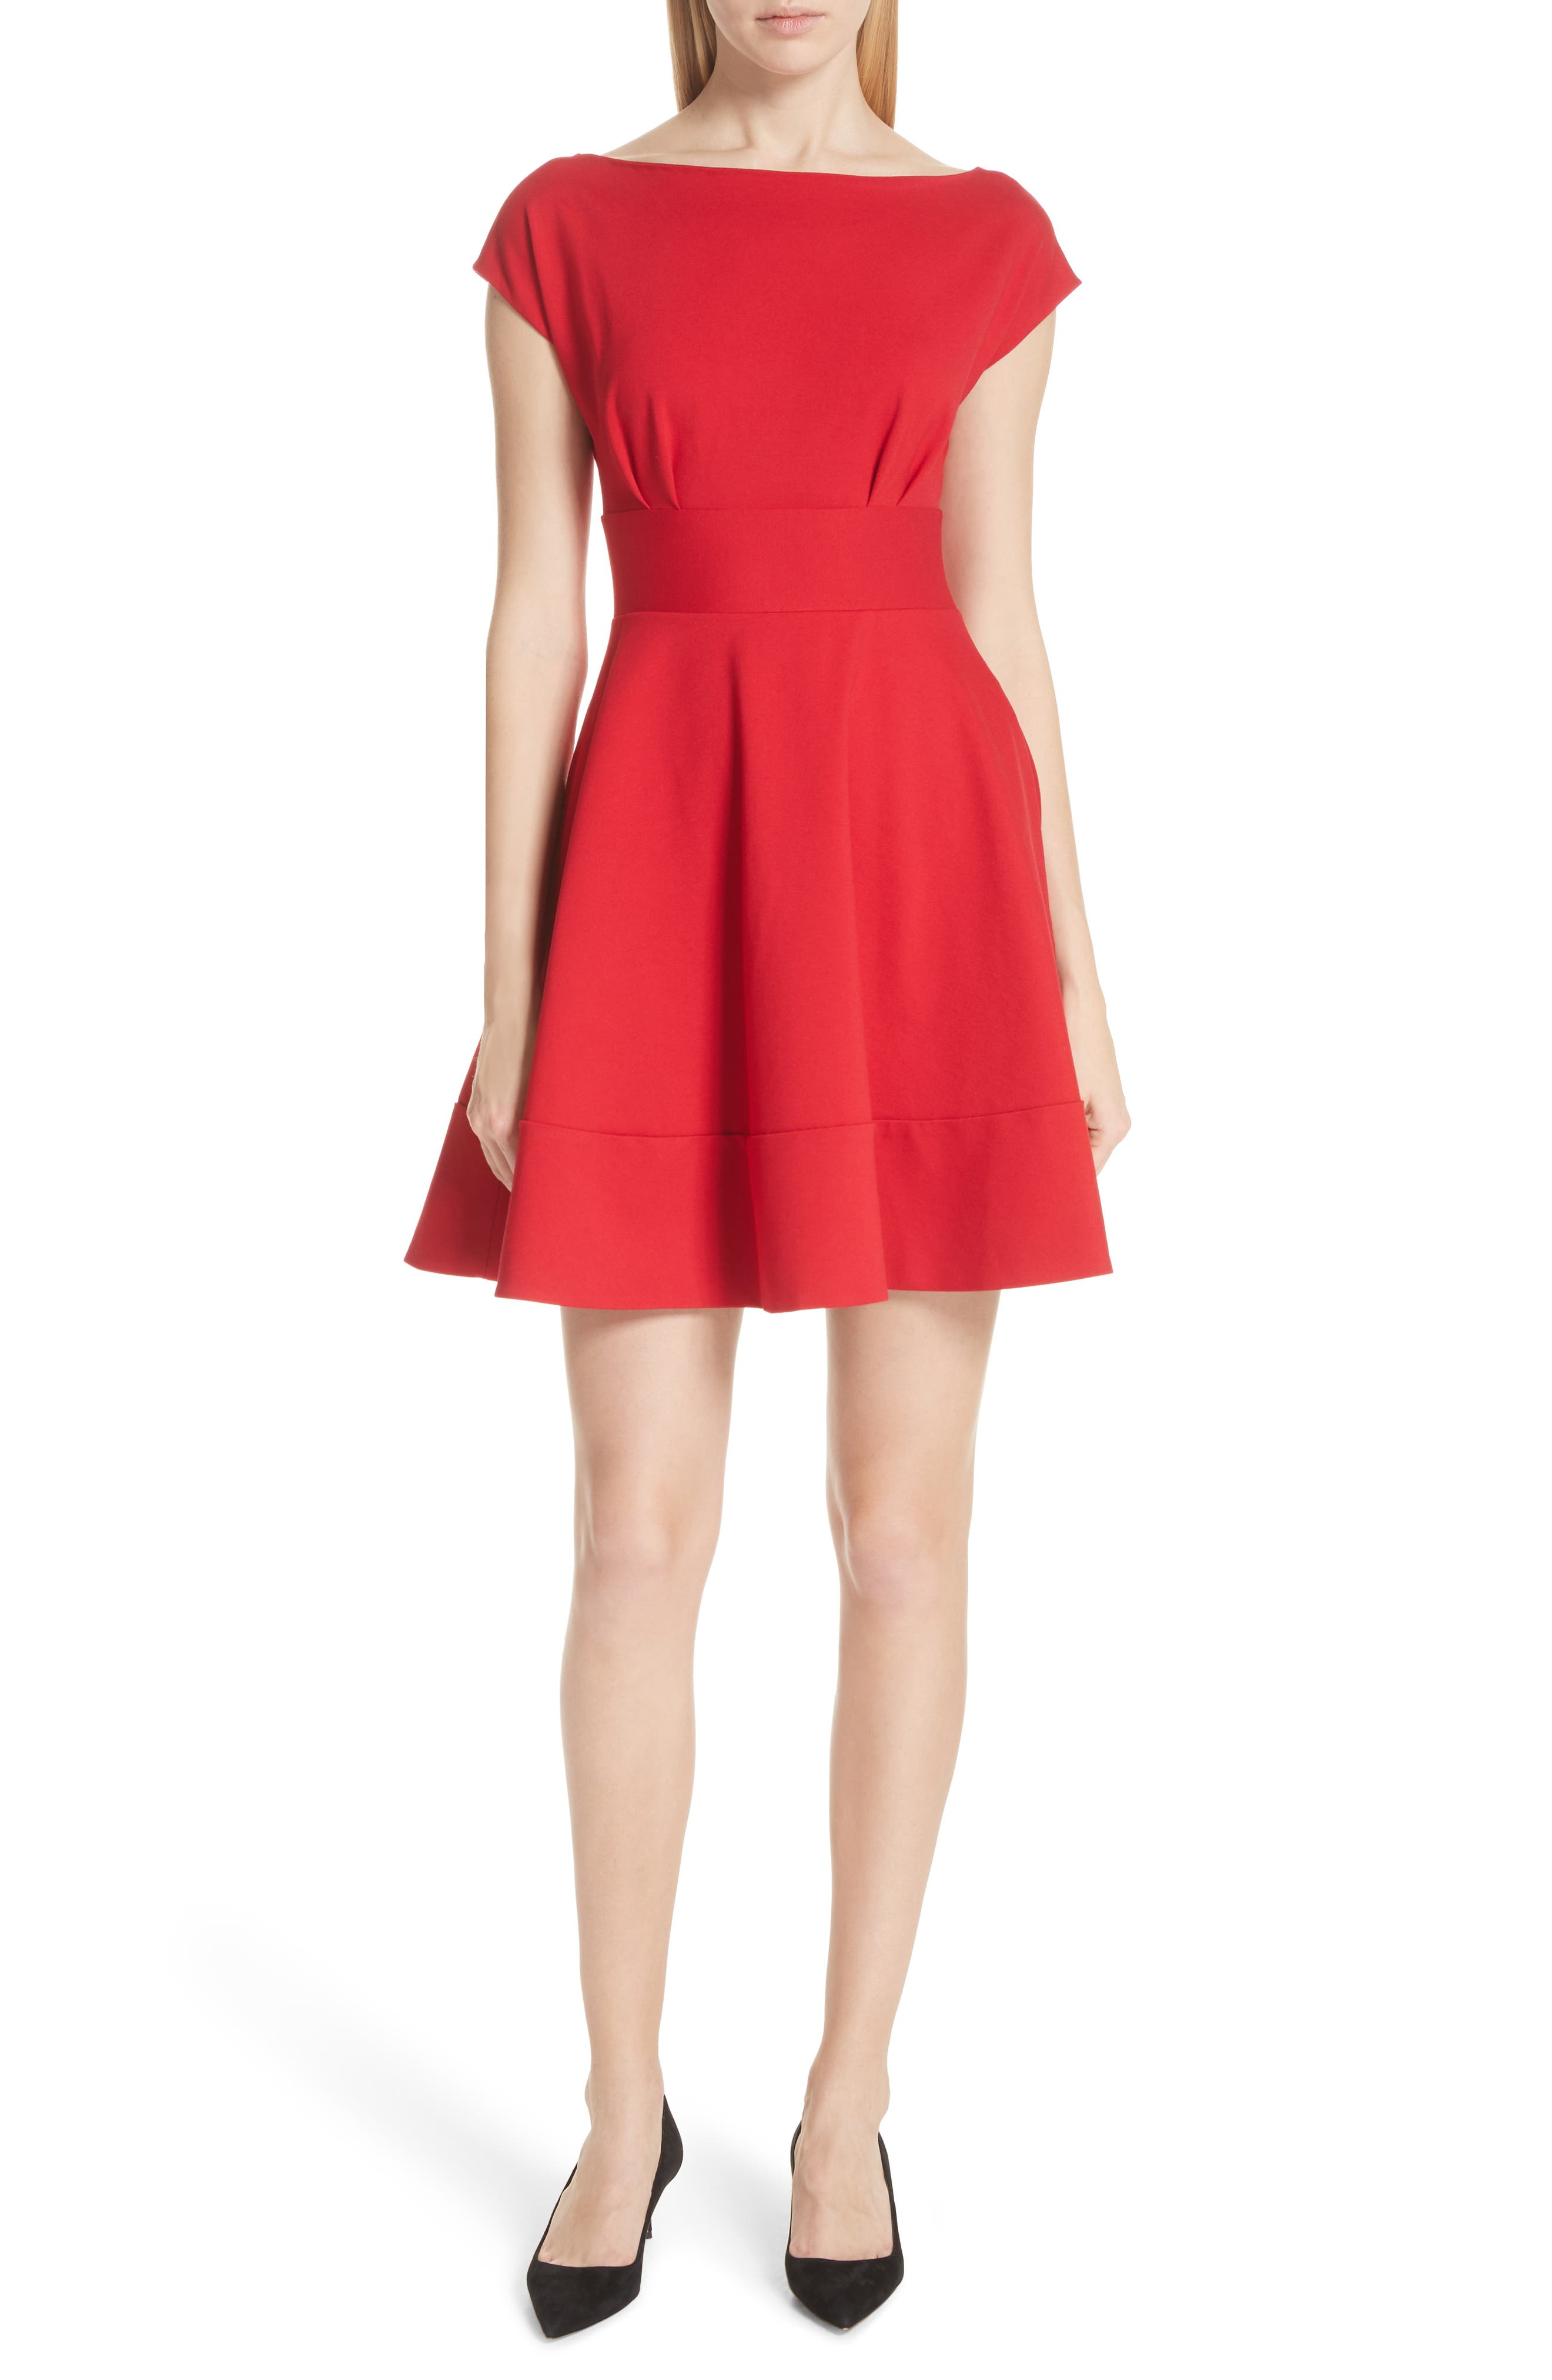 Kate Spade New York Ponte Fiorella Fit & Flare Dress, Red